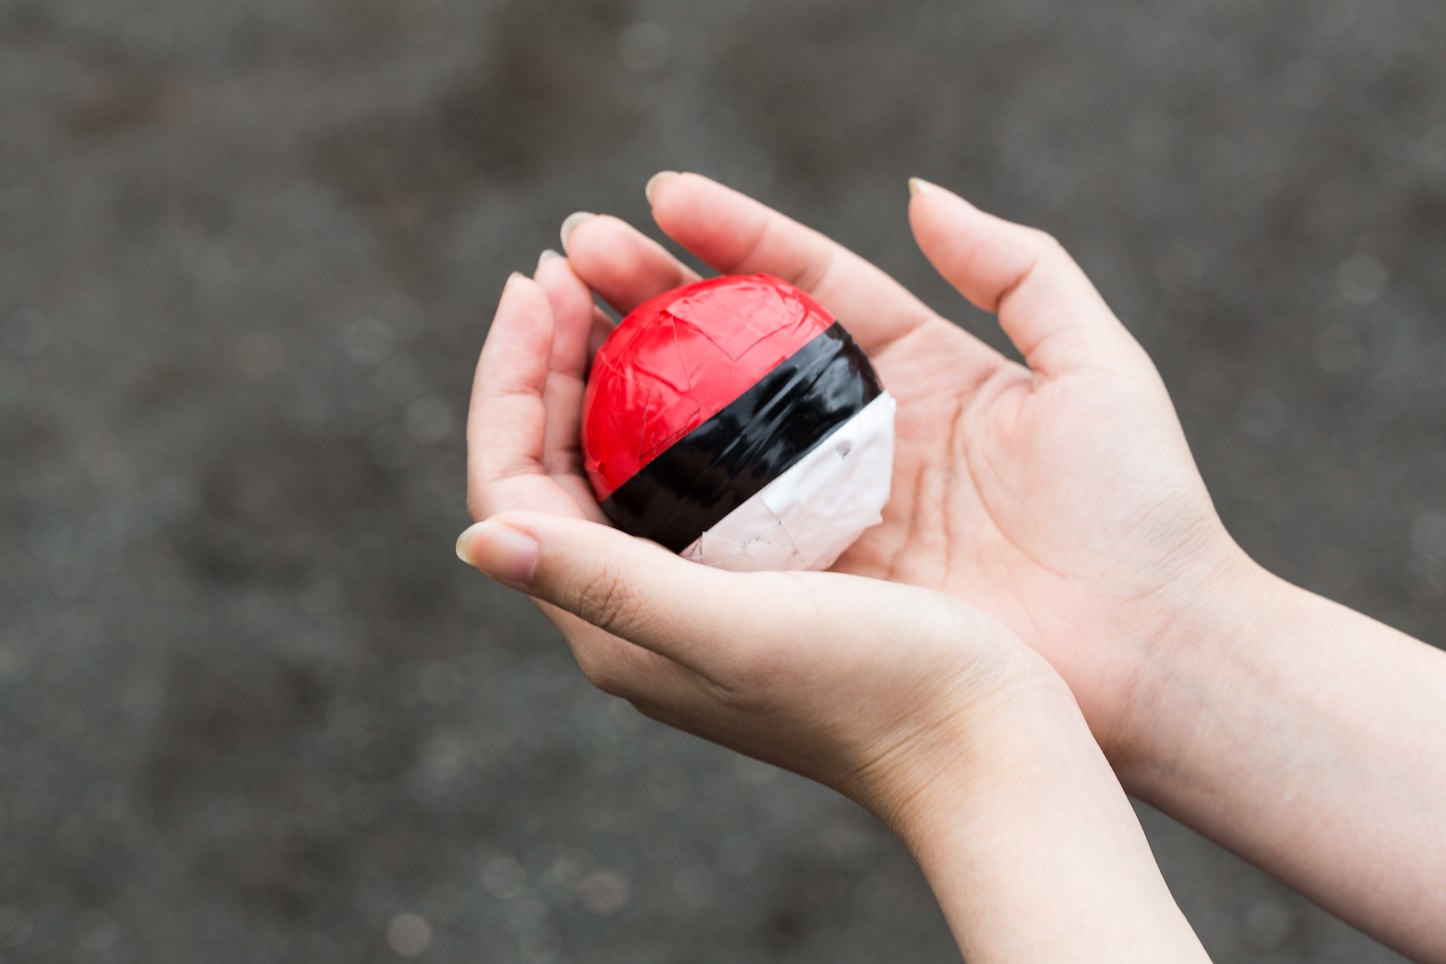 Pokemongo holding the monster ball